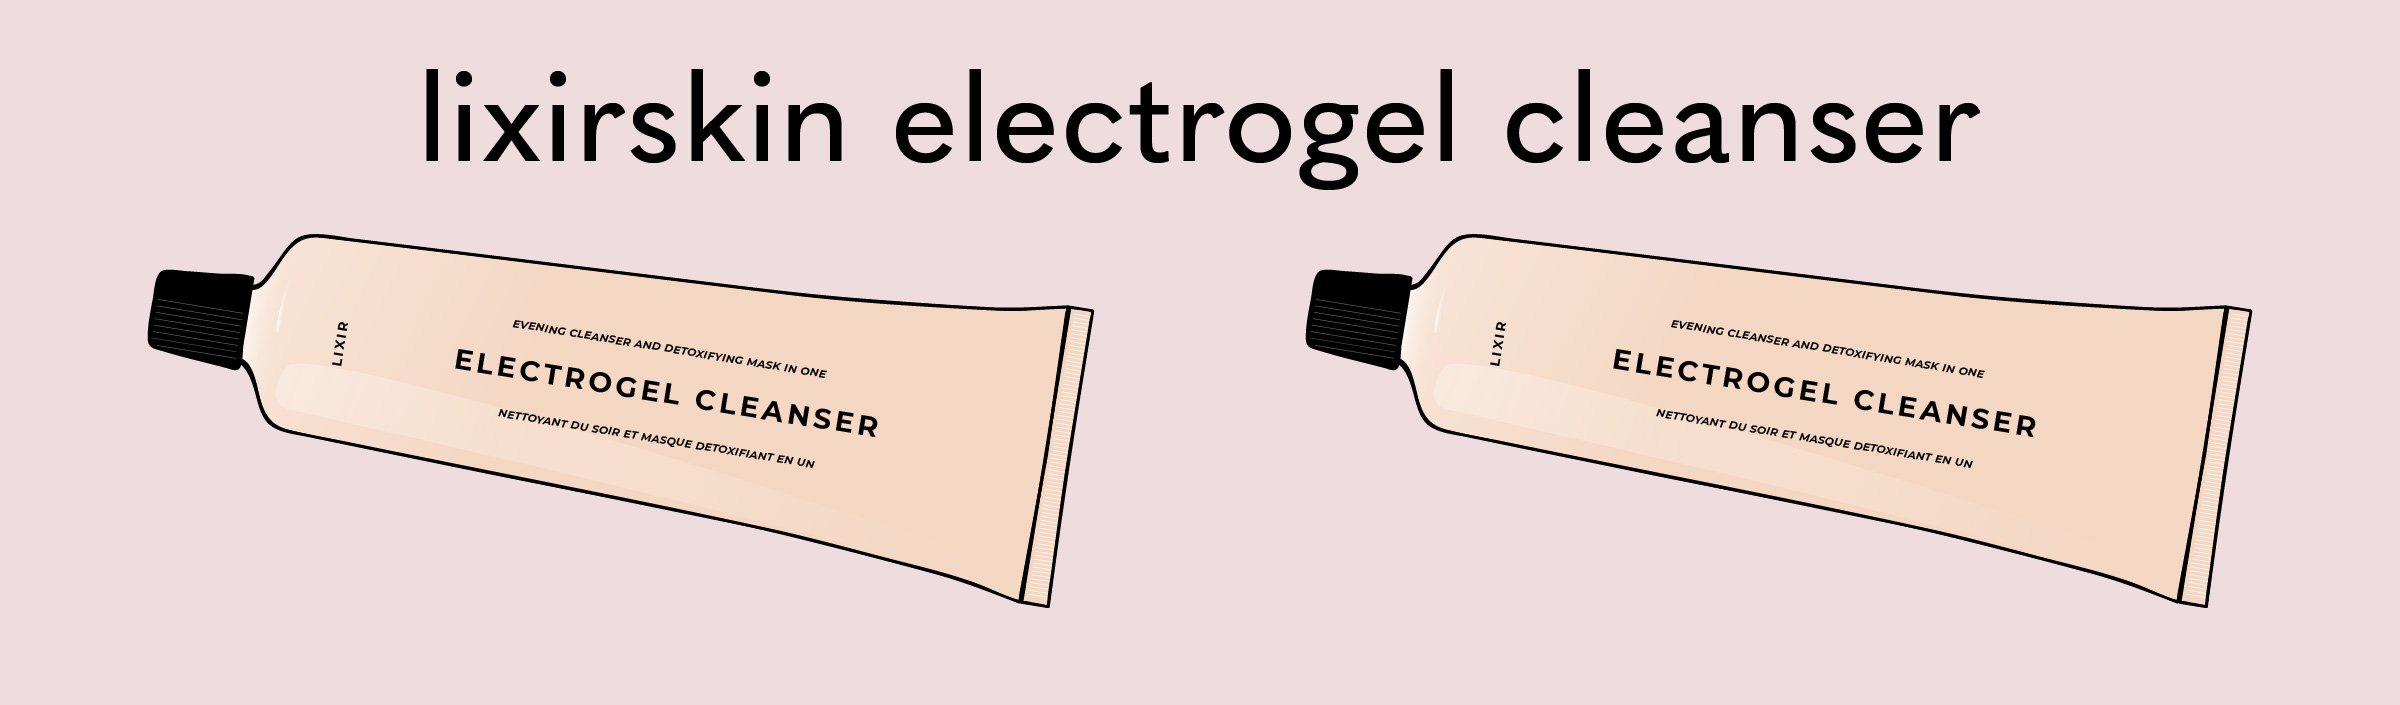 Lixirskin Electrogel Cleanser Review.jpg